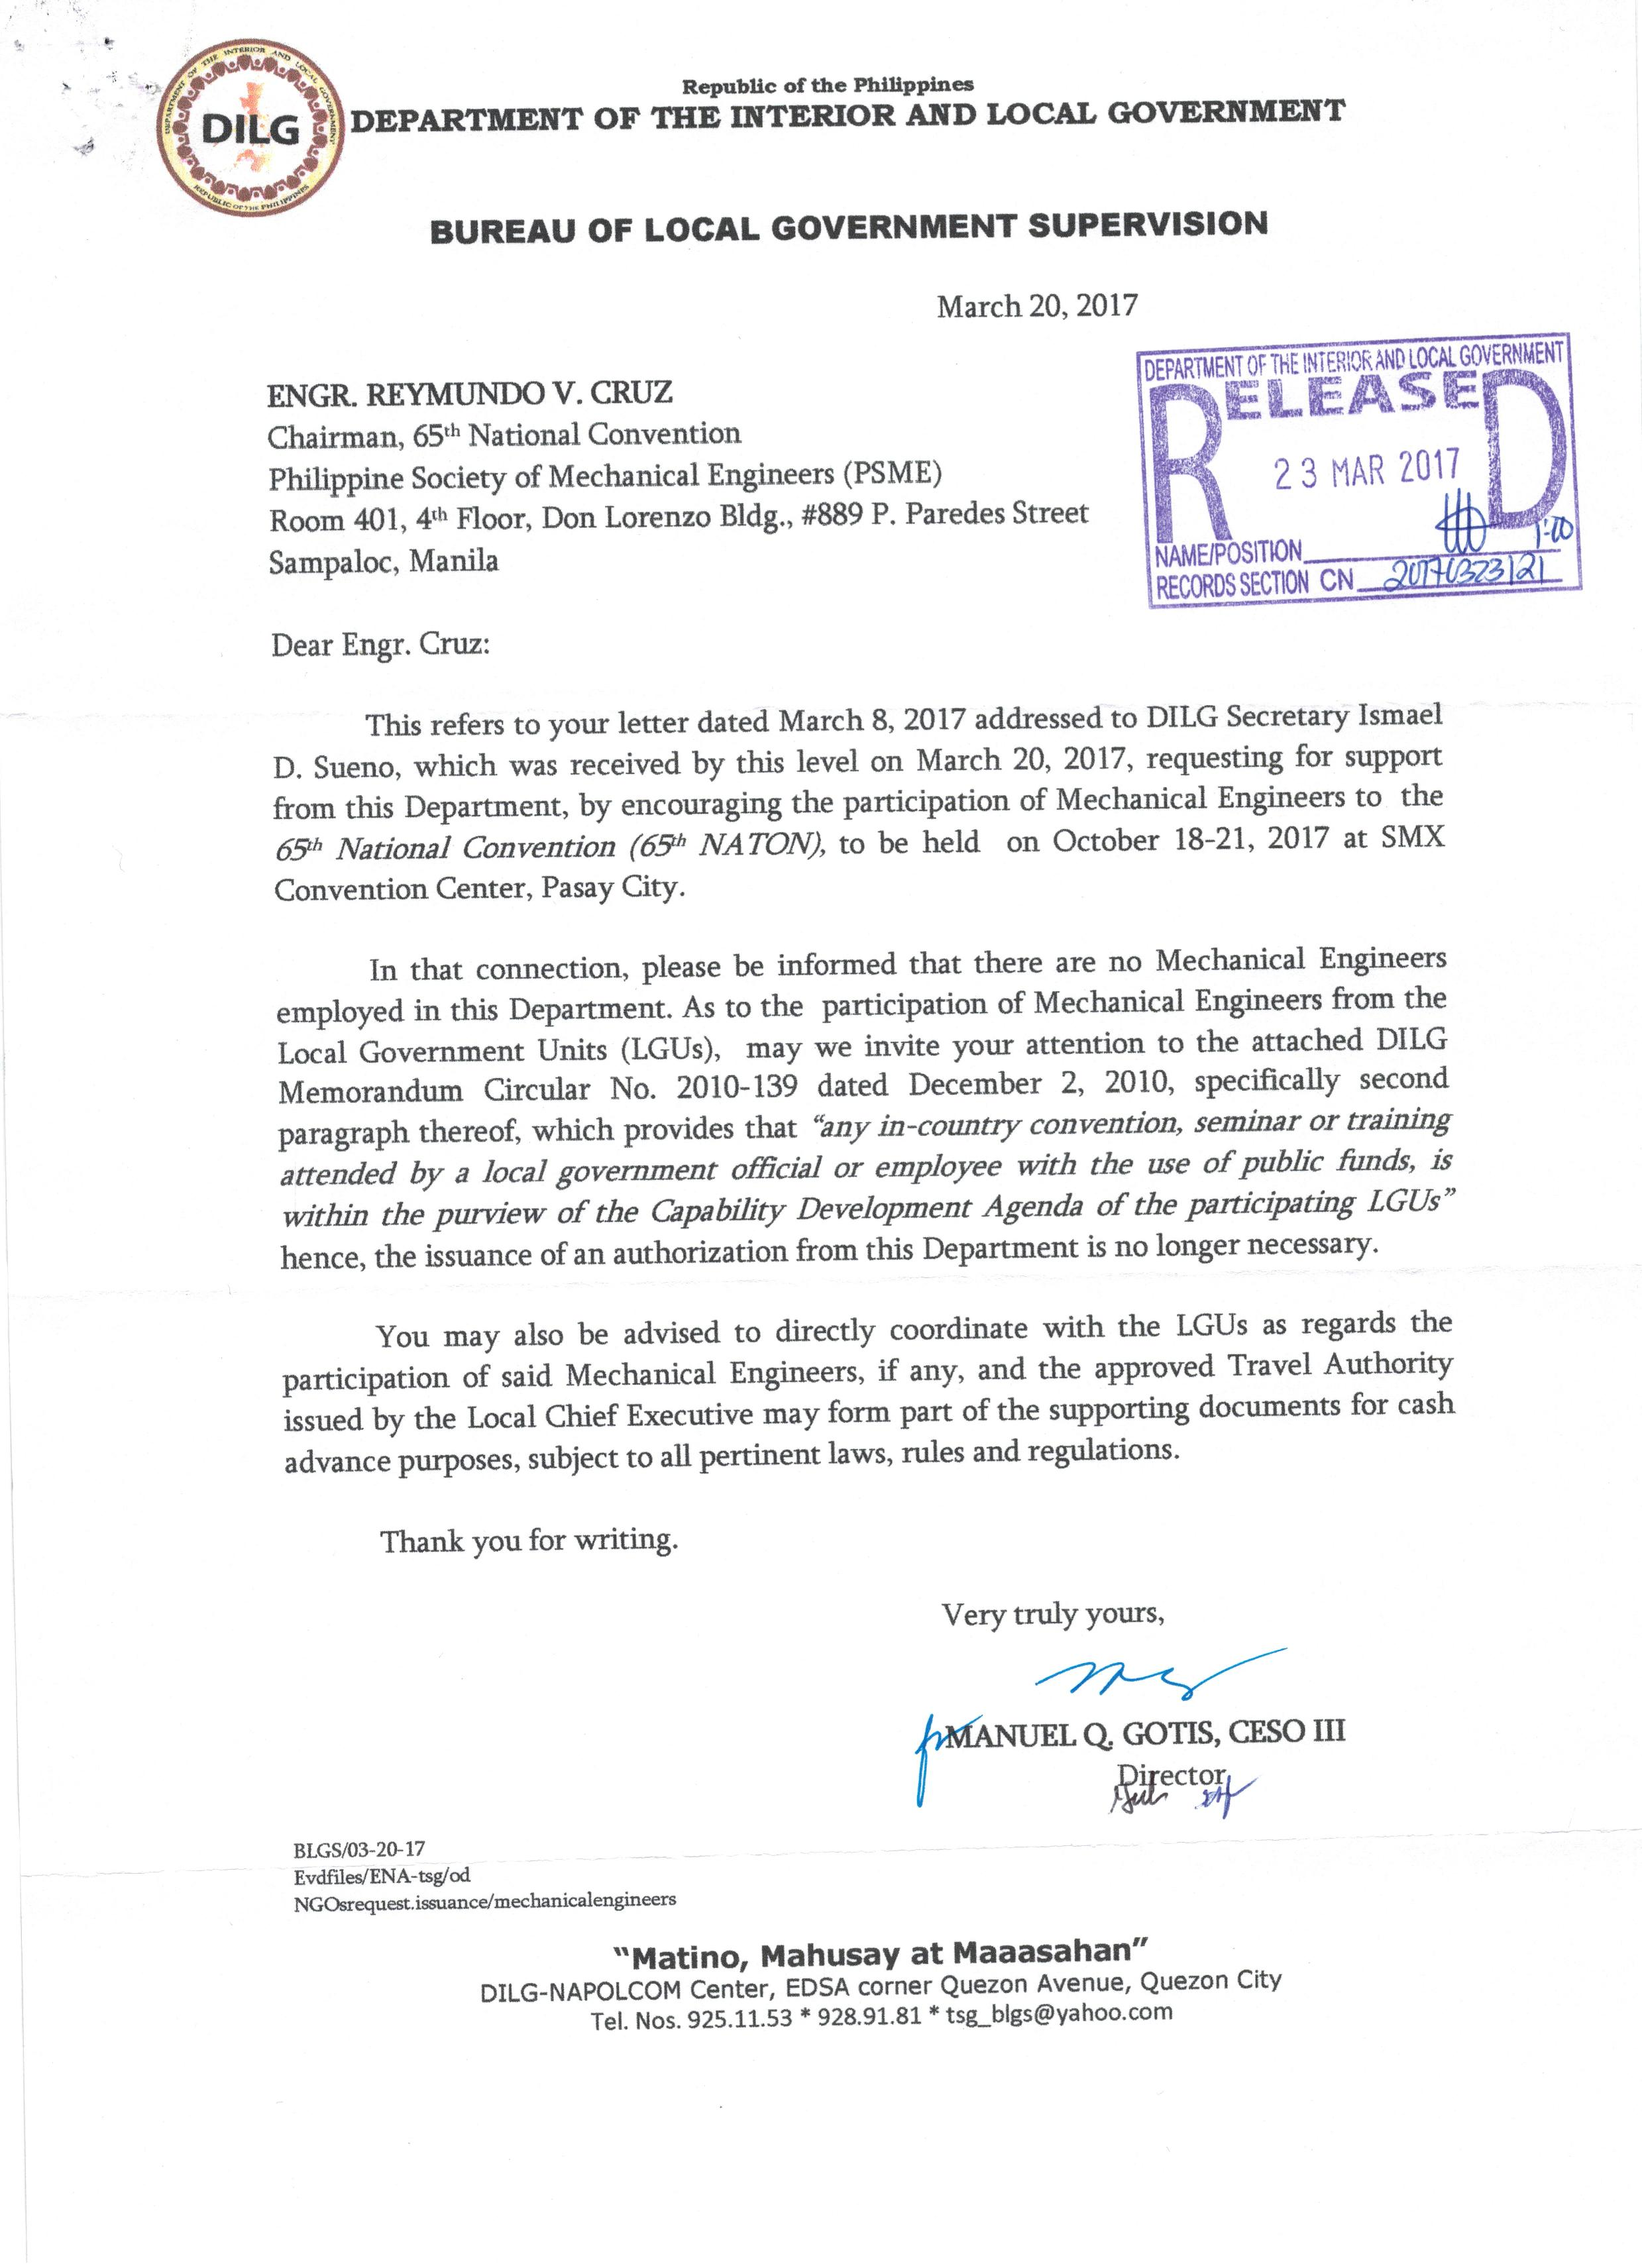 65th psme national convention 2017 philippine society of dilg endorsement letter stopboris Gallery